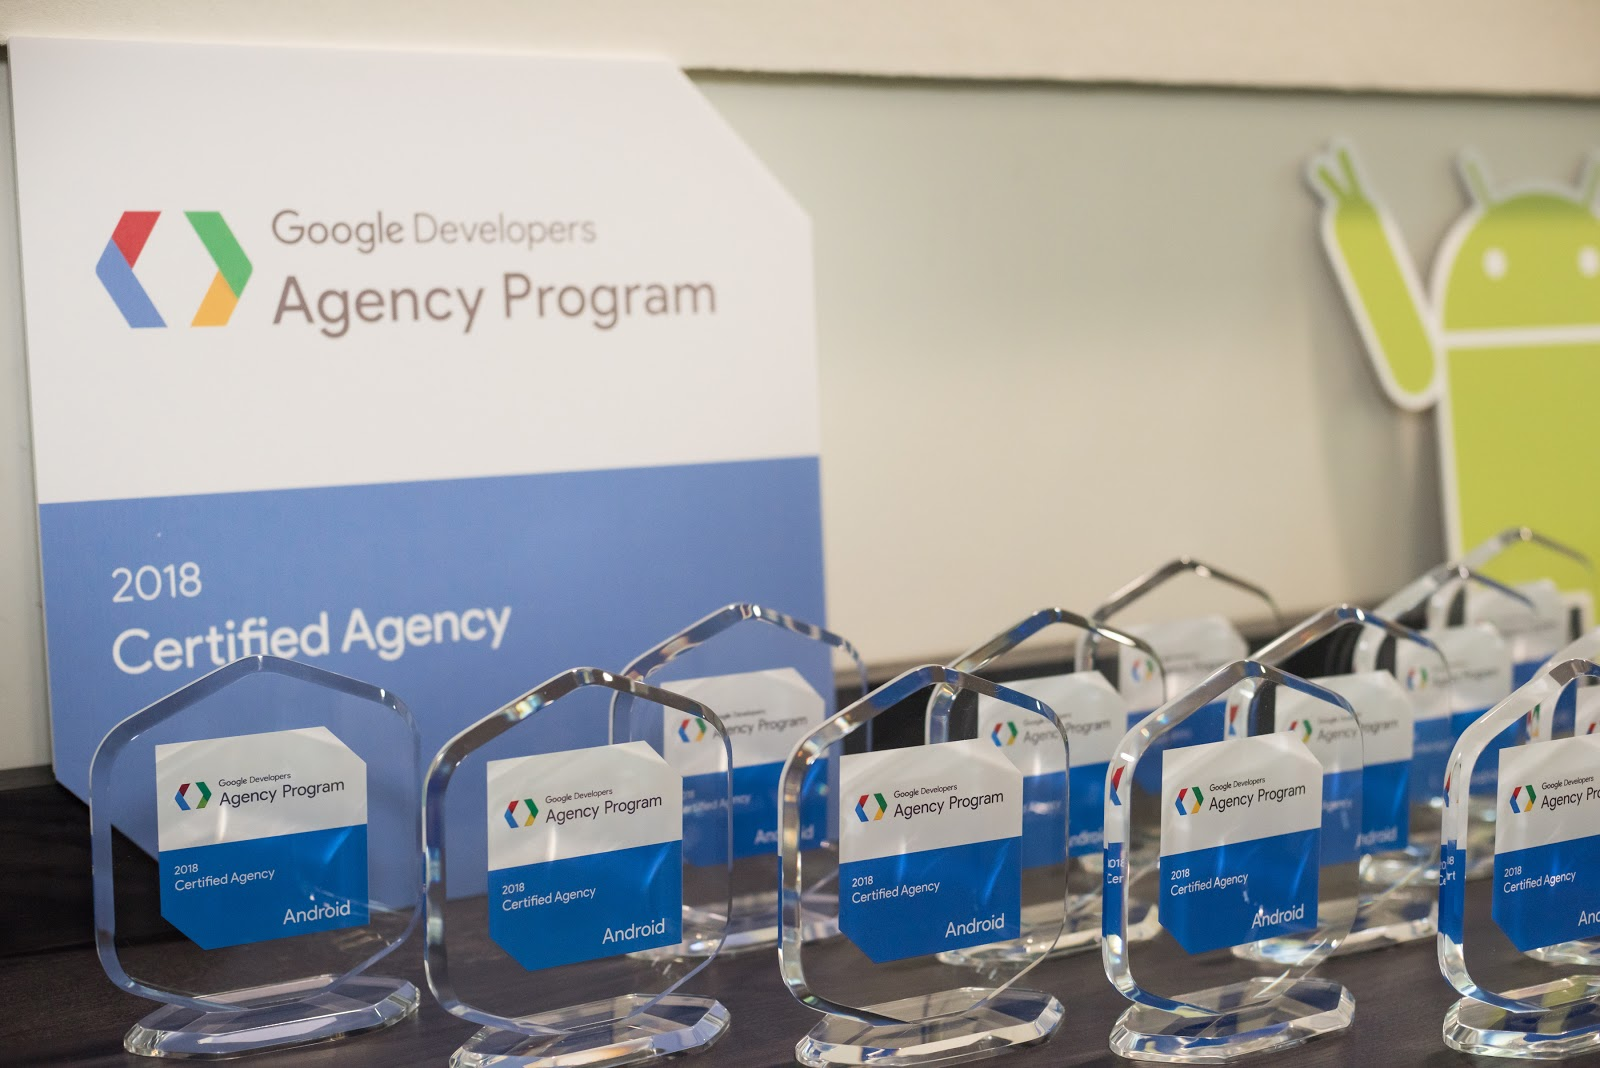 Google Developers Agency Program | Awards